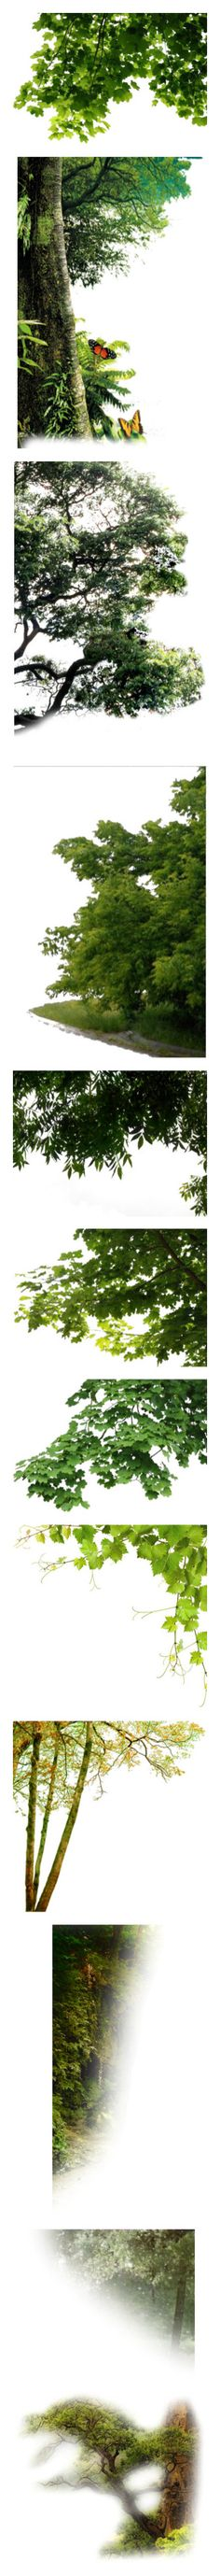 """Trees"" by sjk921 ❤ liked on Polyvore featuring trees, garden, greenery, plants, fade, filler, backgrounds, flowers, nature and tubes"